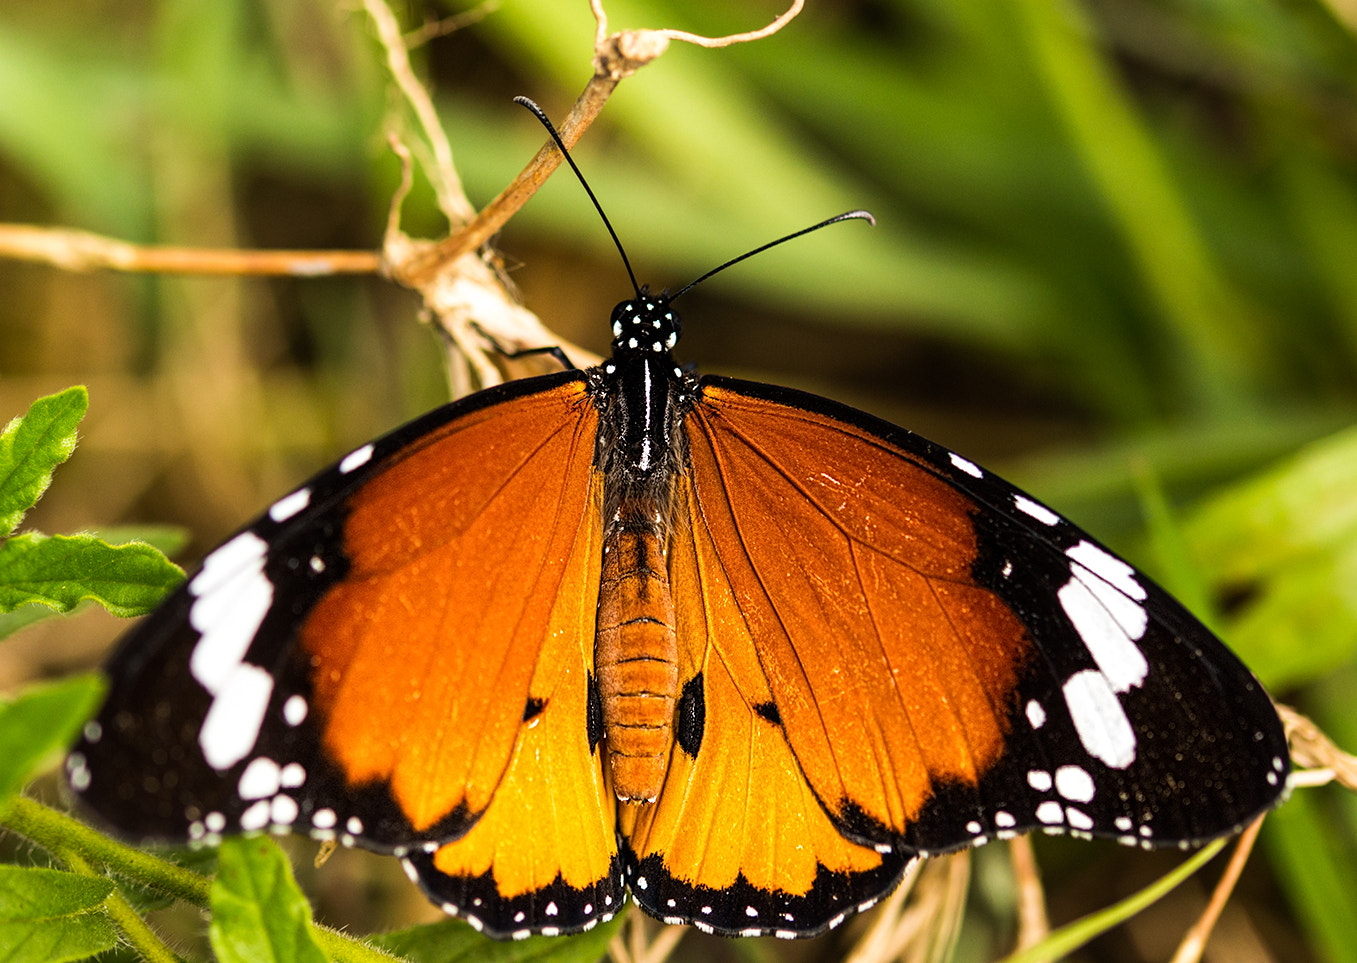 Photograph Butterfly by Roger Fanner on 500px